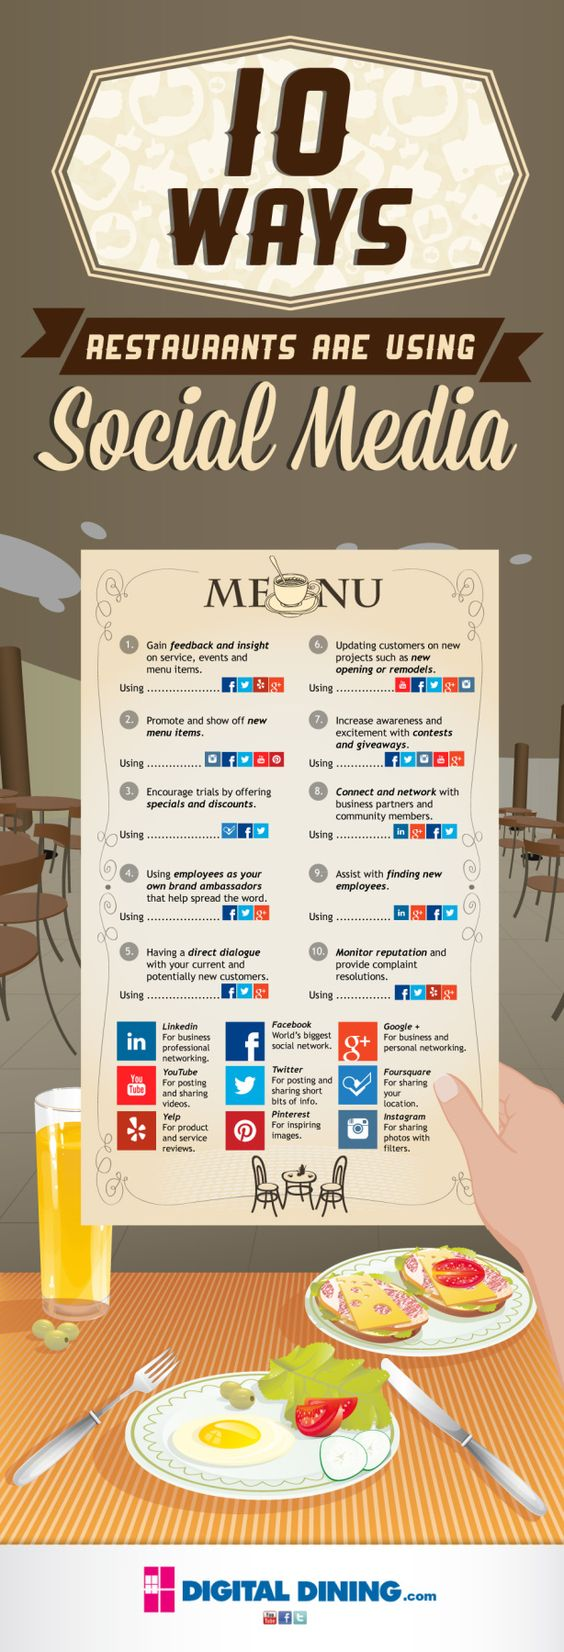 10 Ways Restaurants are Using Social Media Infographic #socialmedia